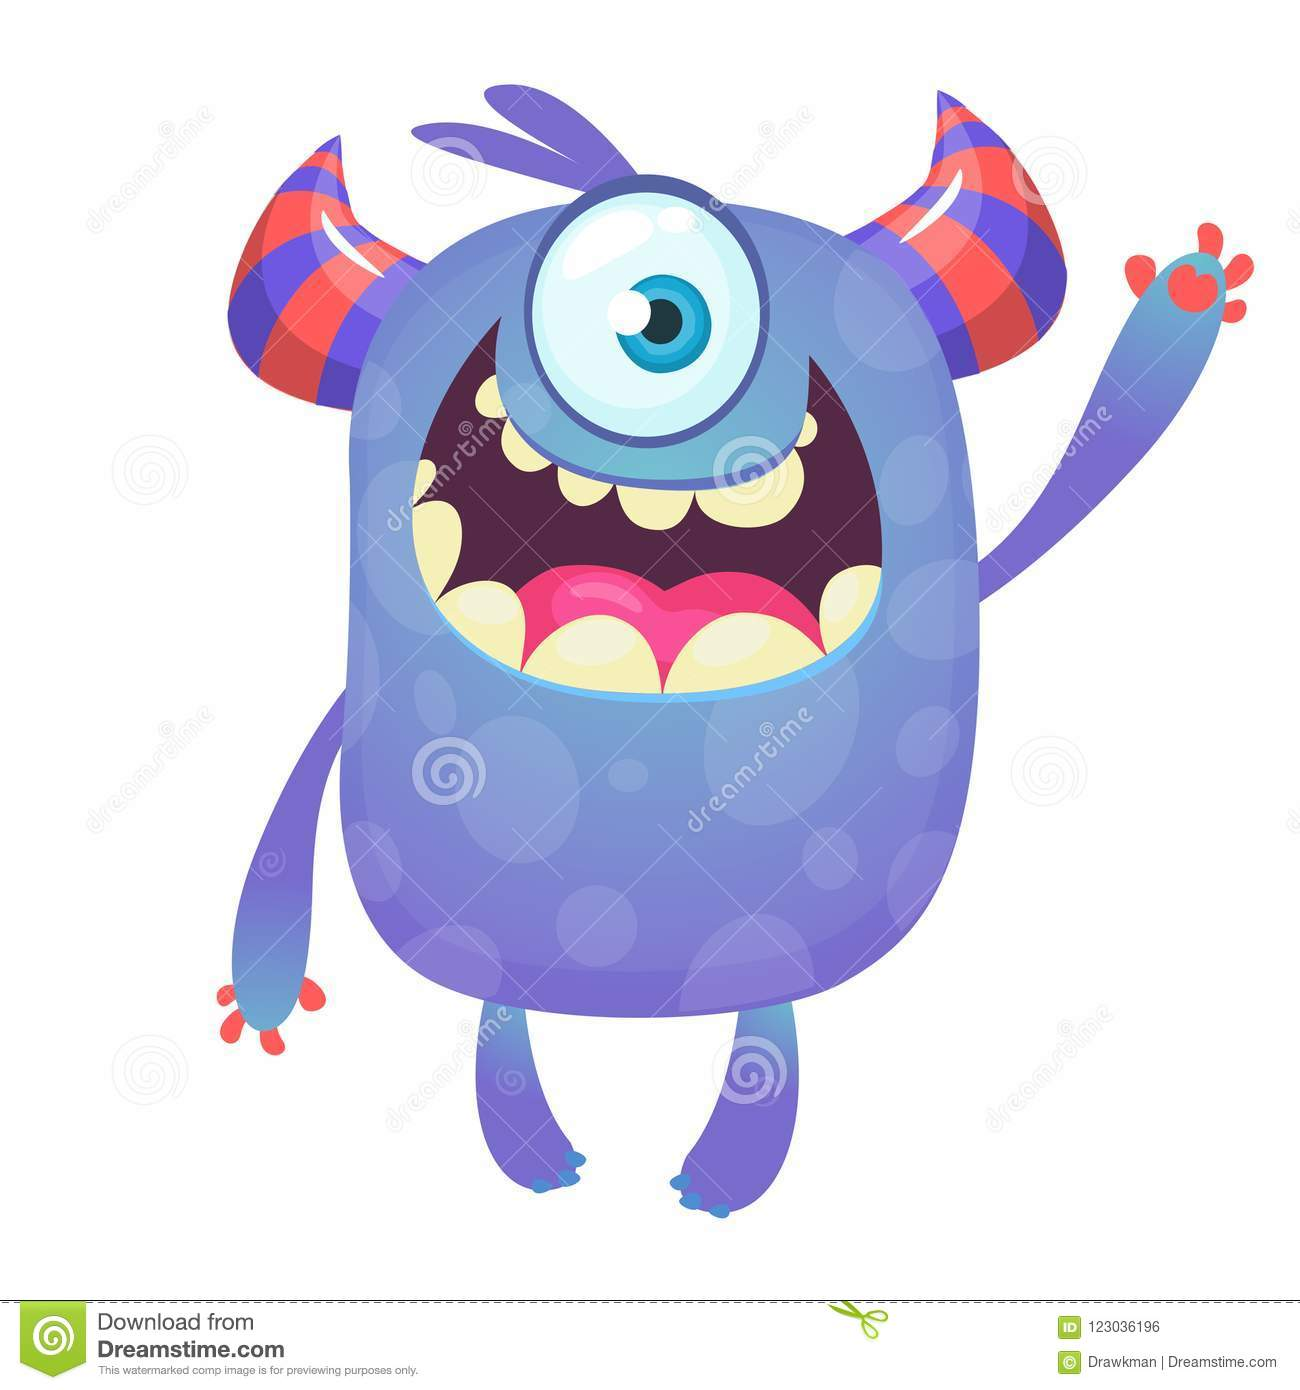 Cute Cartoon Monster With Horns And With One Eye Smiling Monster Emotion With Big Mouth Stock Vector Illustration Of Creature Bright 123036196